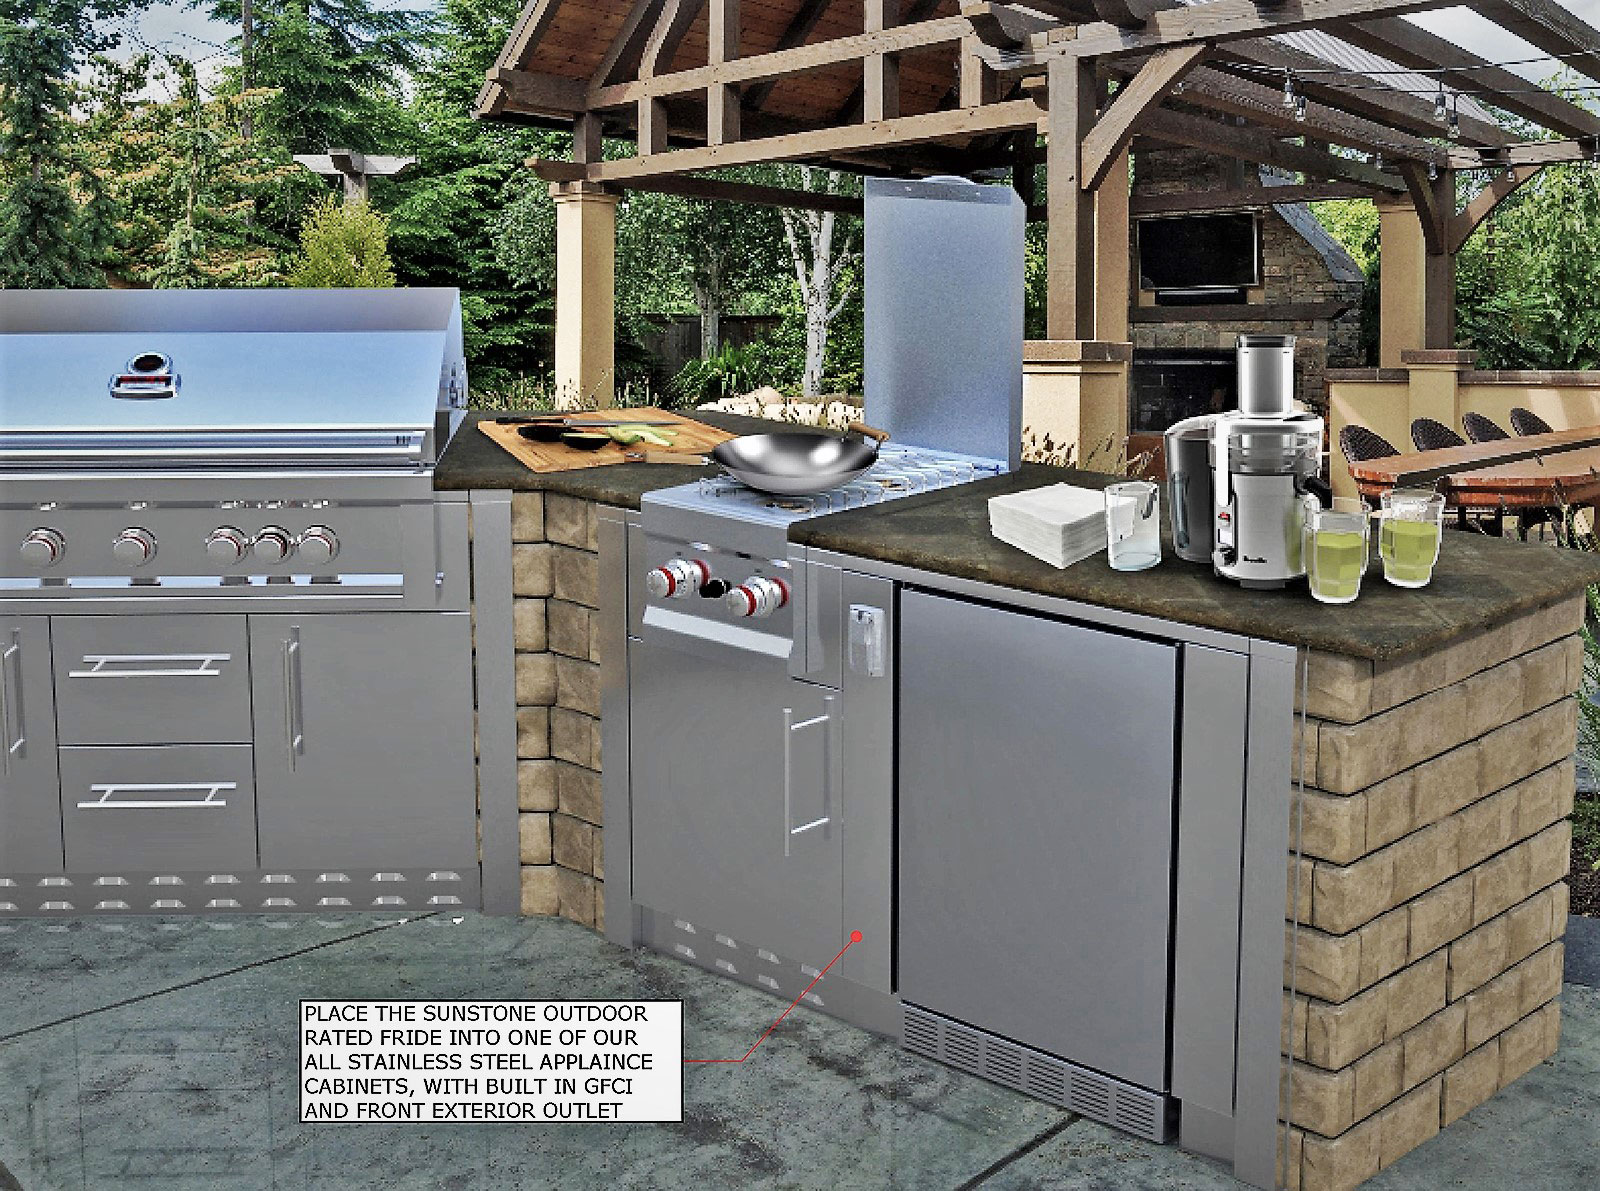 OUTDOOR RATED REFRIGERATOR Sunstonemetalproducts.com